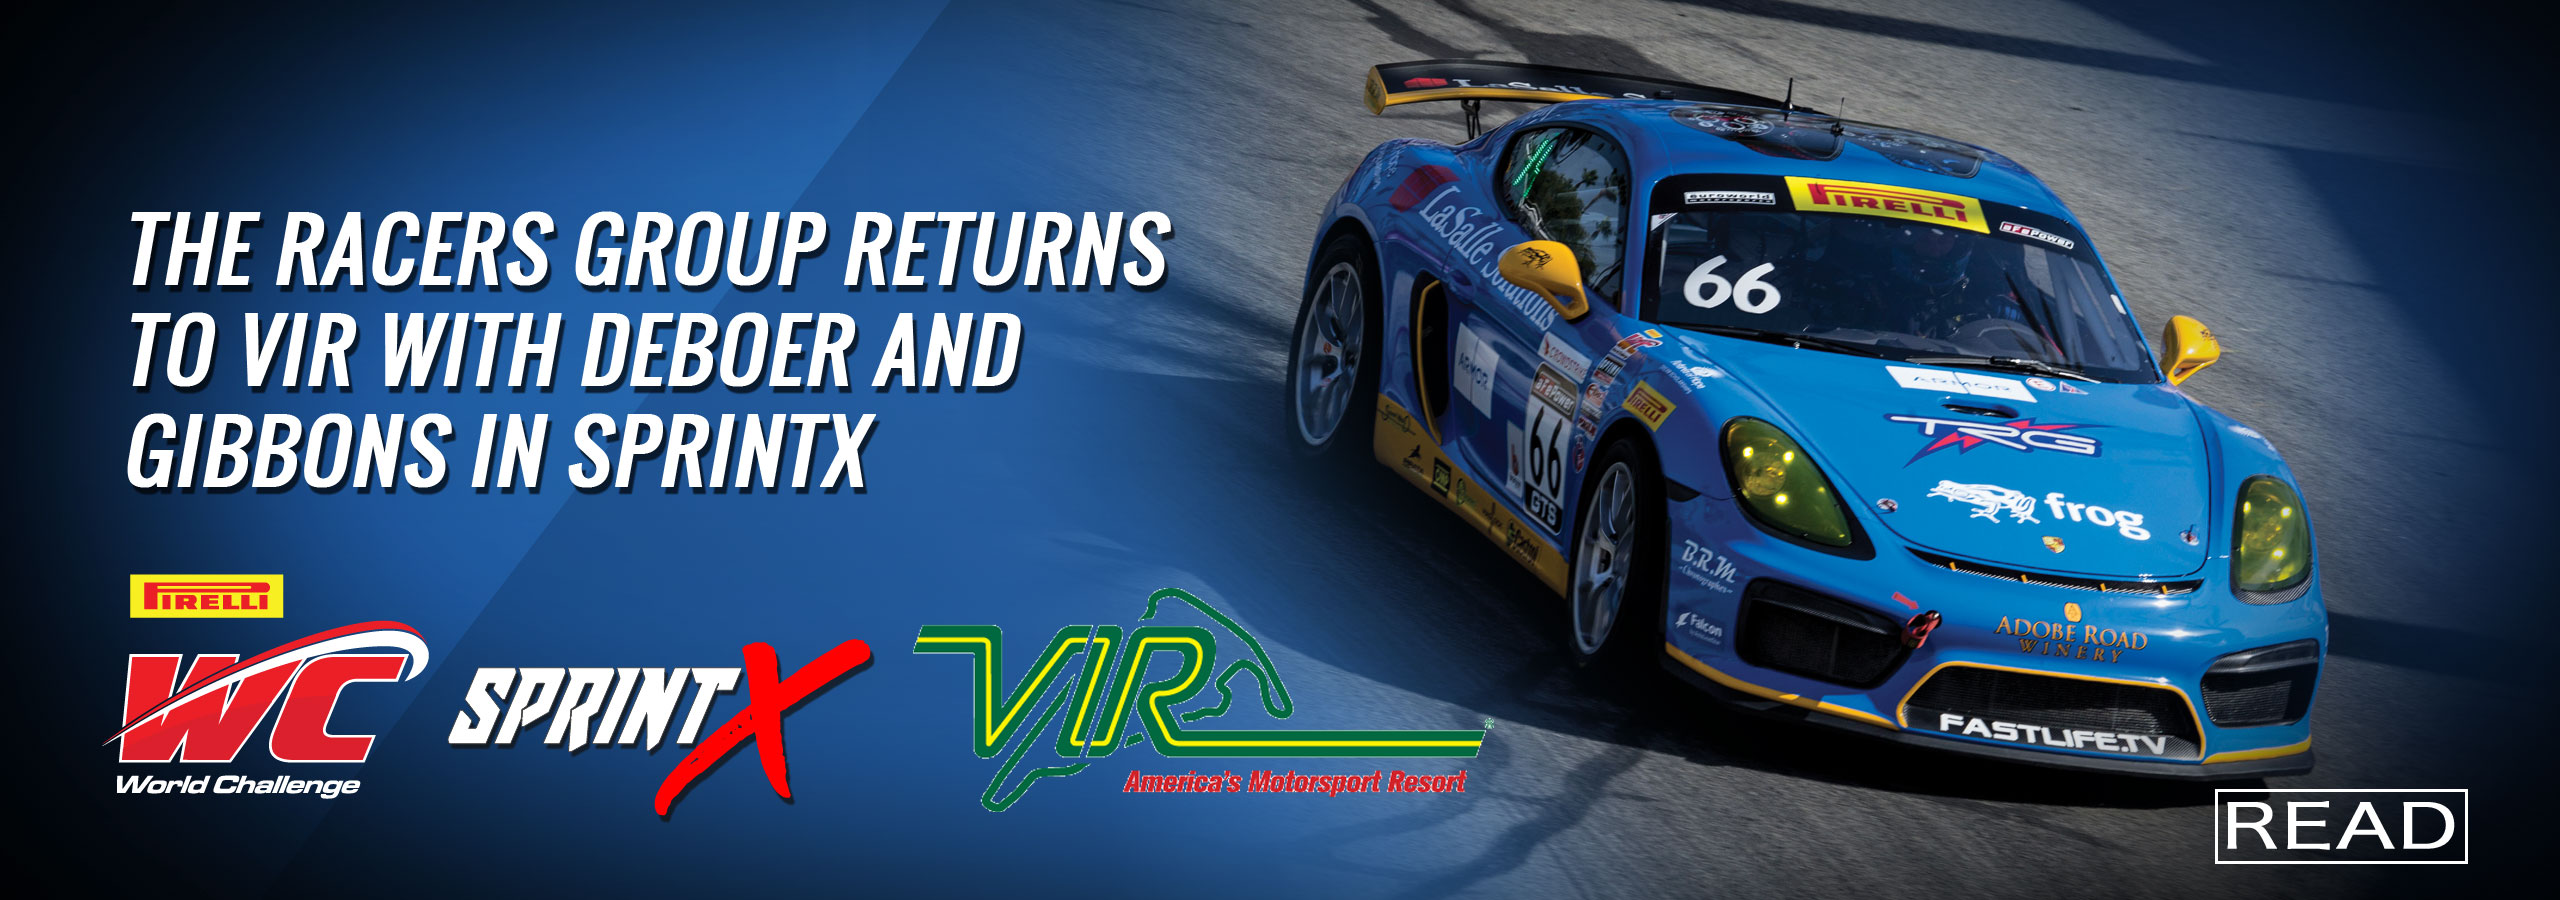 The Racers Group Returns to VIR with DeBoer and Gibbons in SprintX